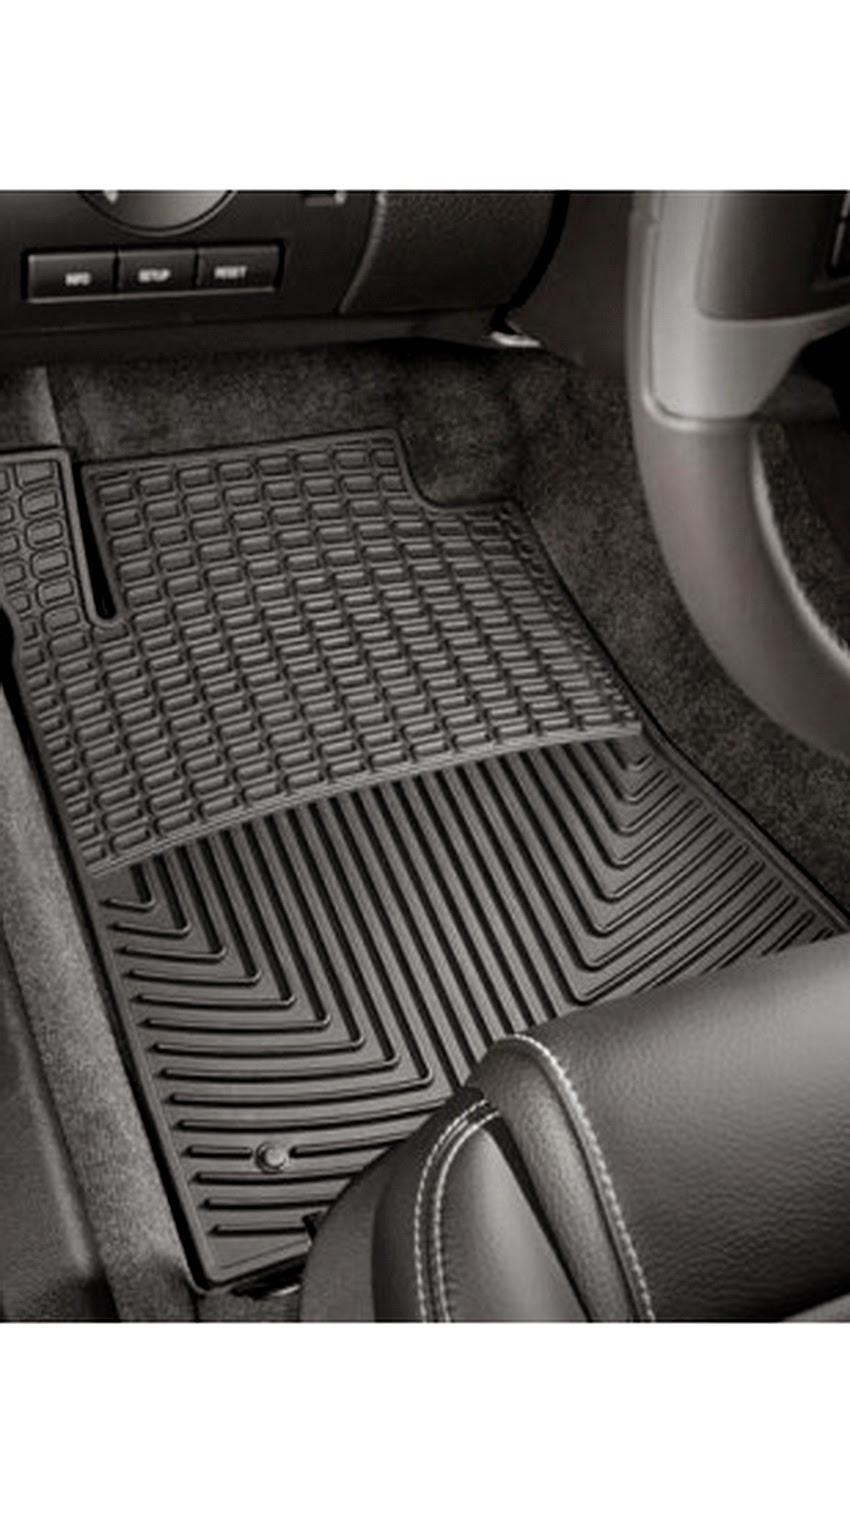 Rubber floor mats mustang -  In Your Mustang Or Things Getting Tracked In By Shoes You Need A Little Help In The Preservation Of The Interior Of The Interior 2011 2014 Mustang